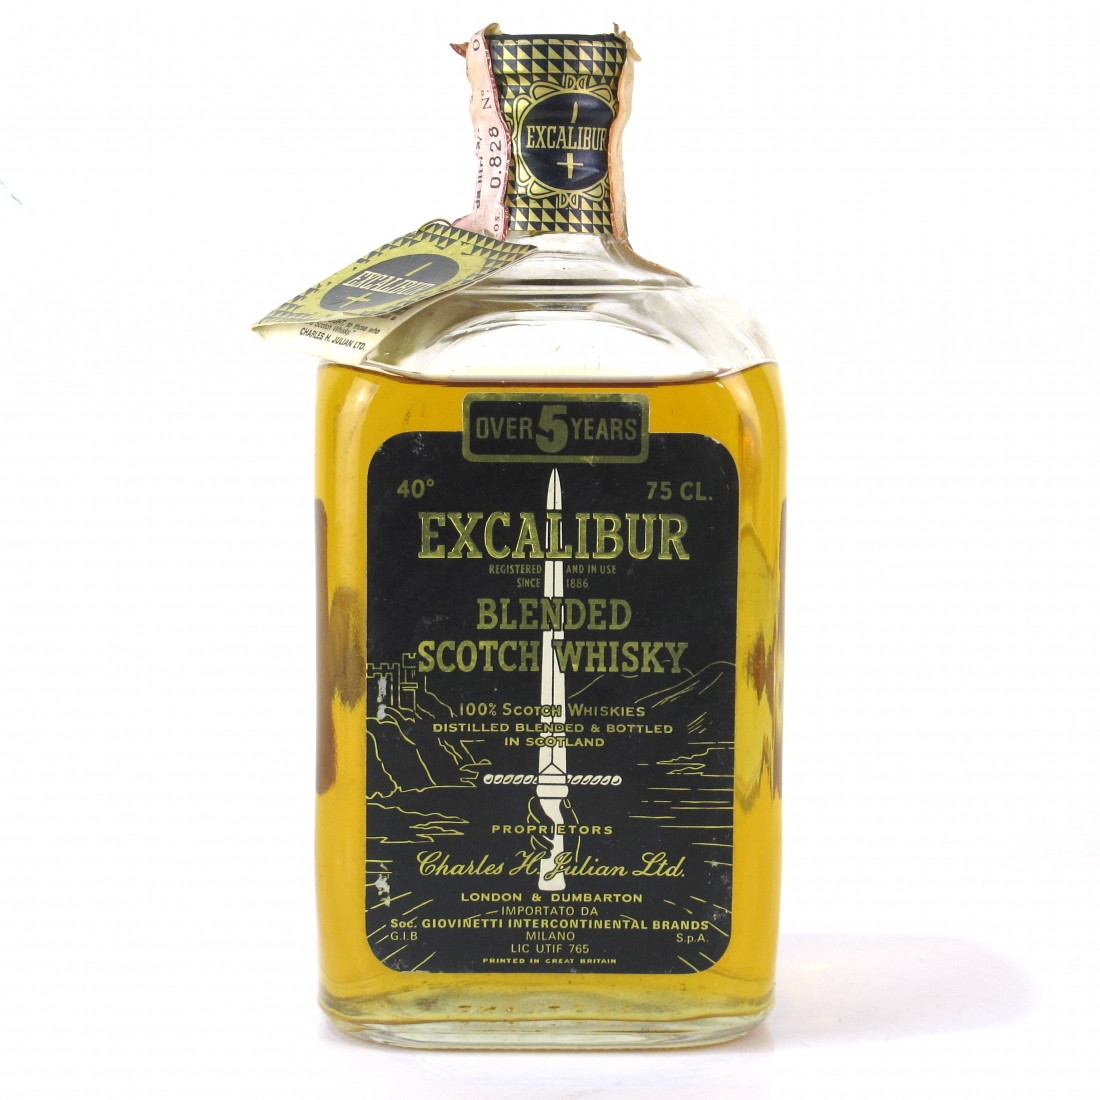 Excalibur 5 Year Old Scotch Whisky 1960s